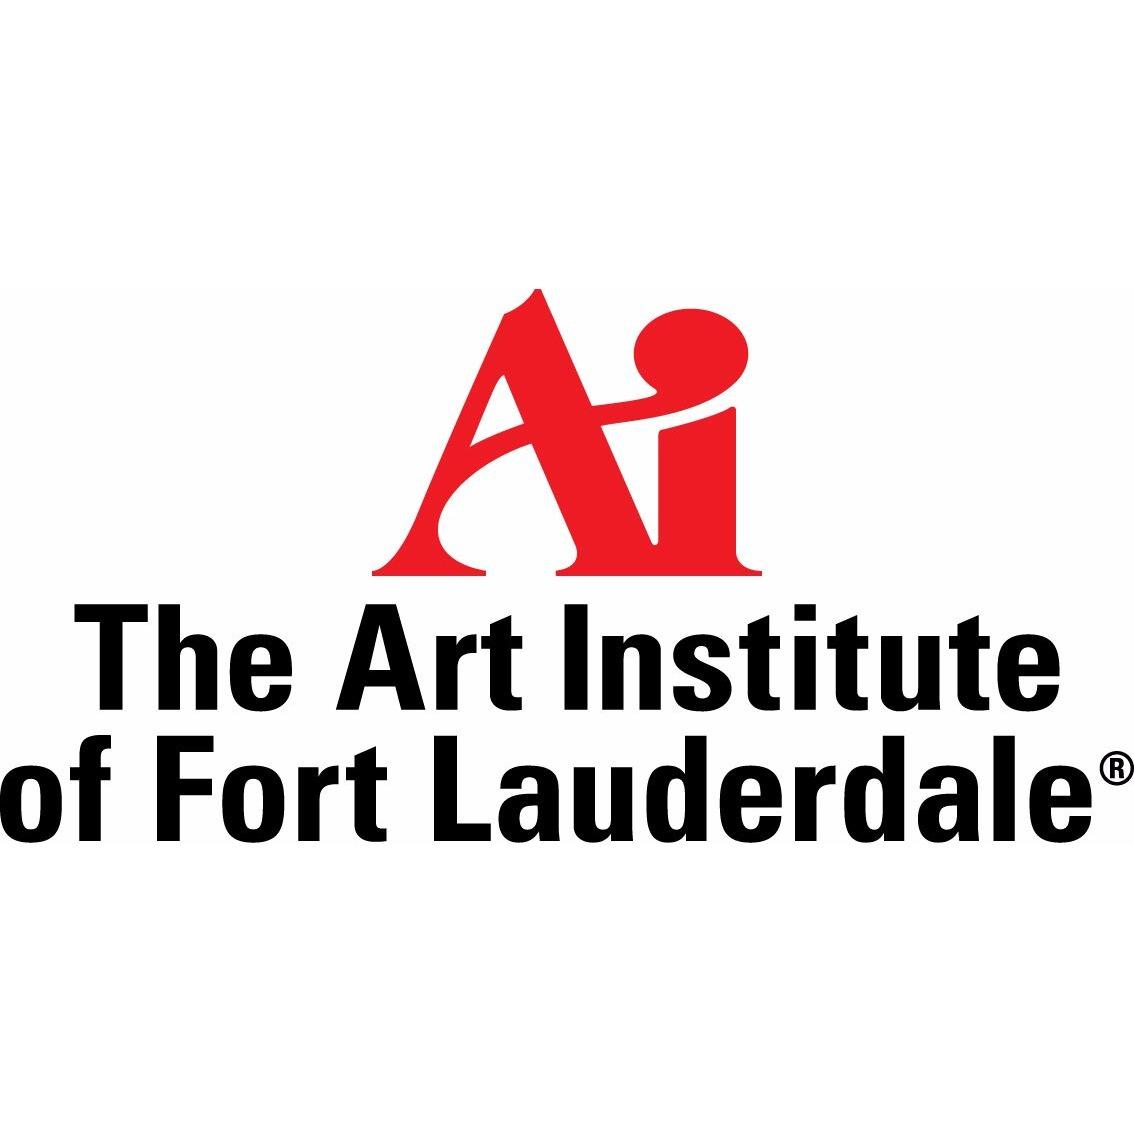 The Art Institute of Fort Lauderdale